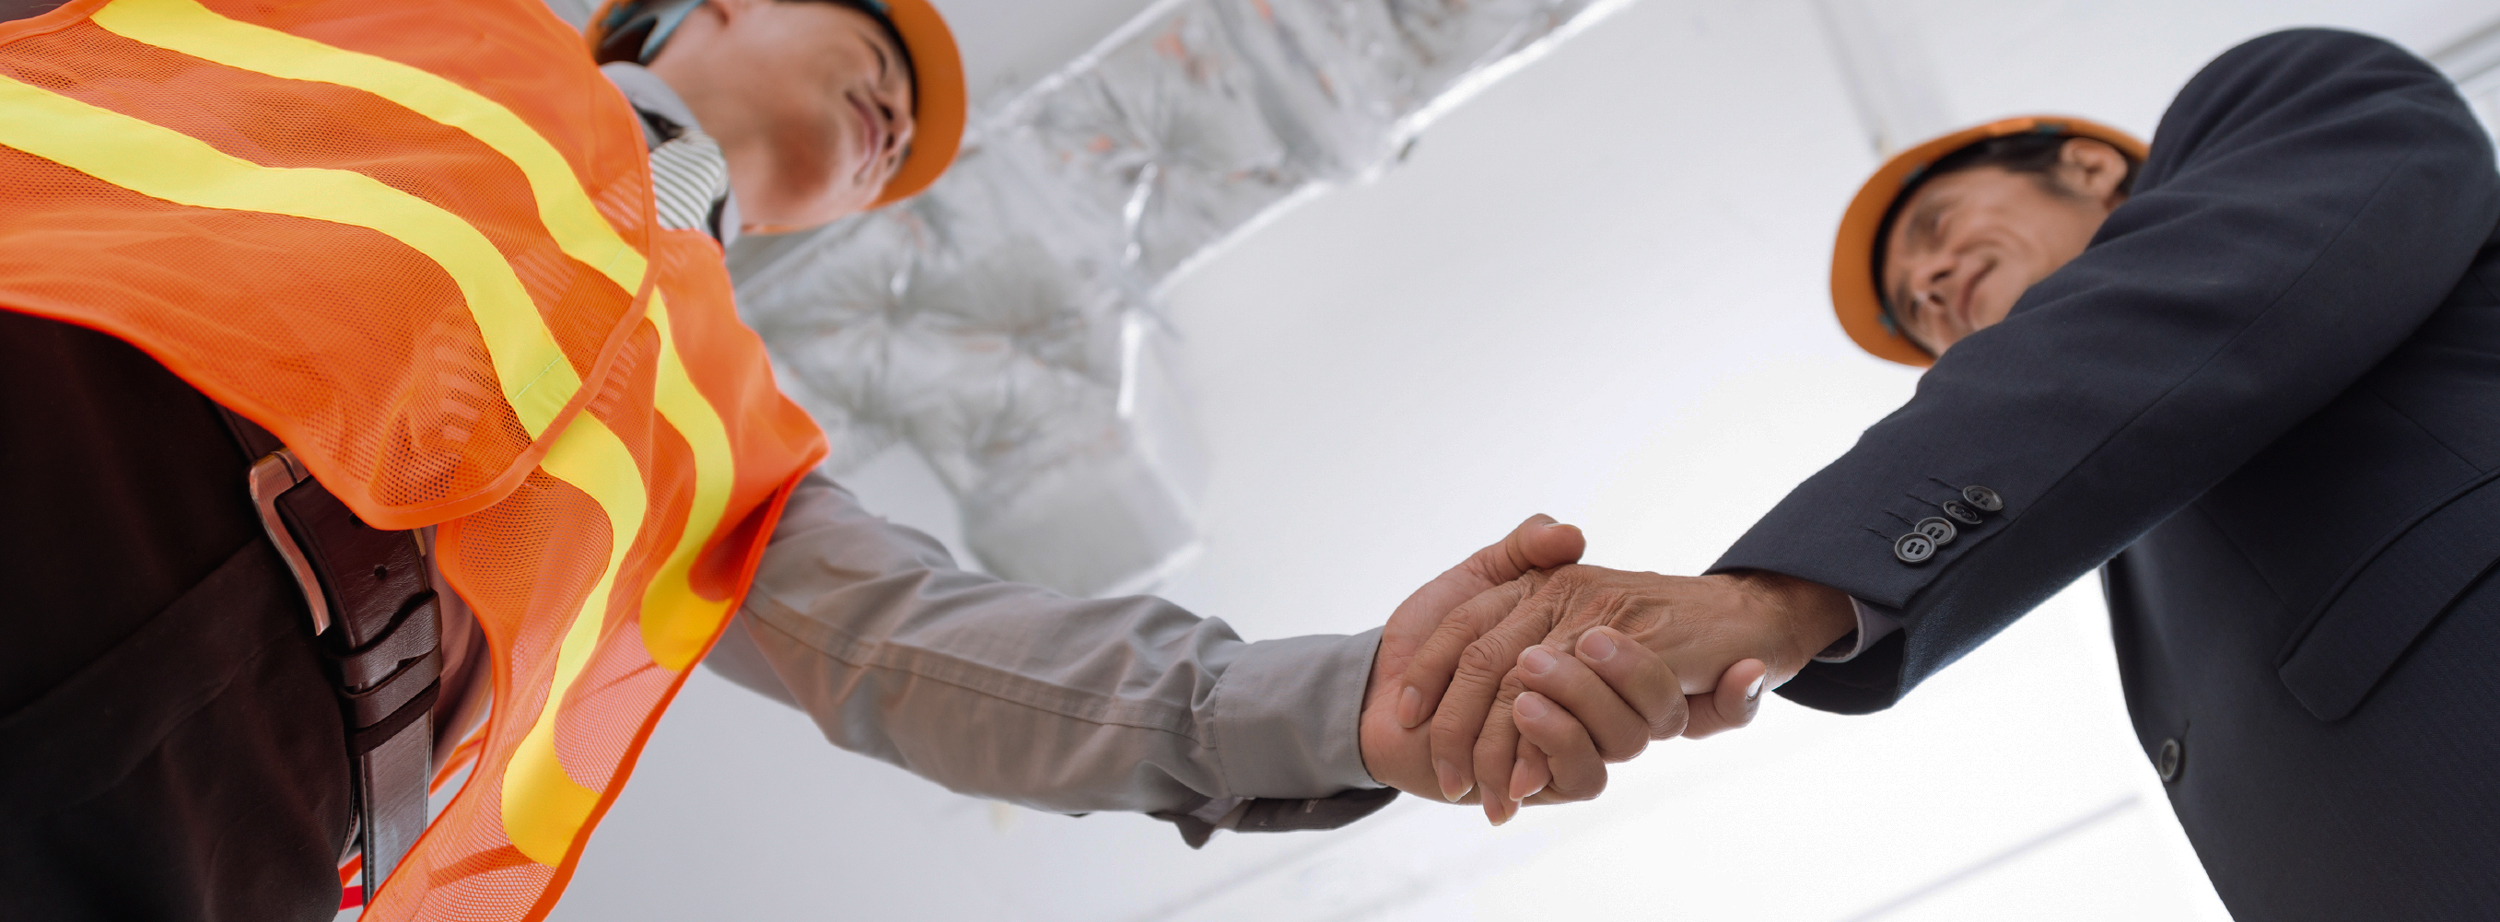 Construction man and businessman shaking hands